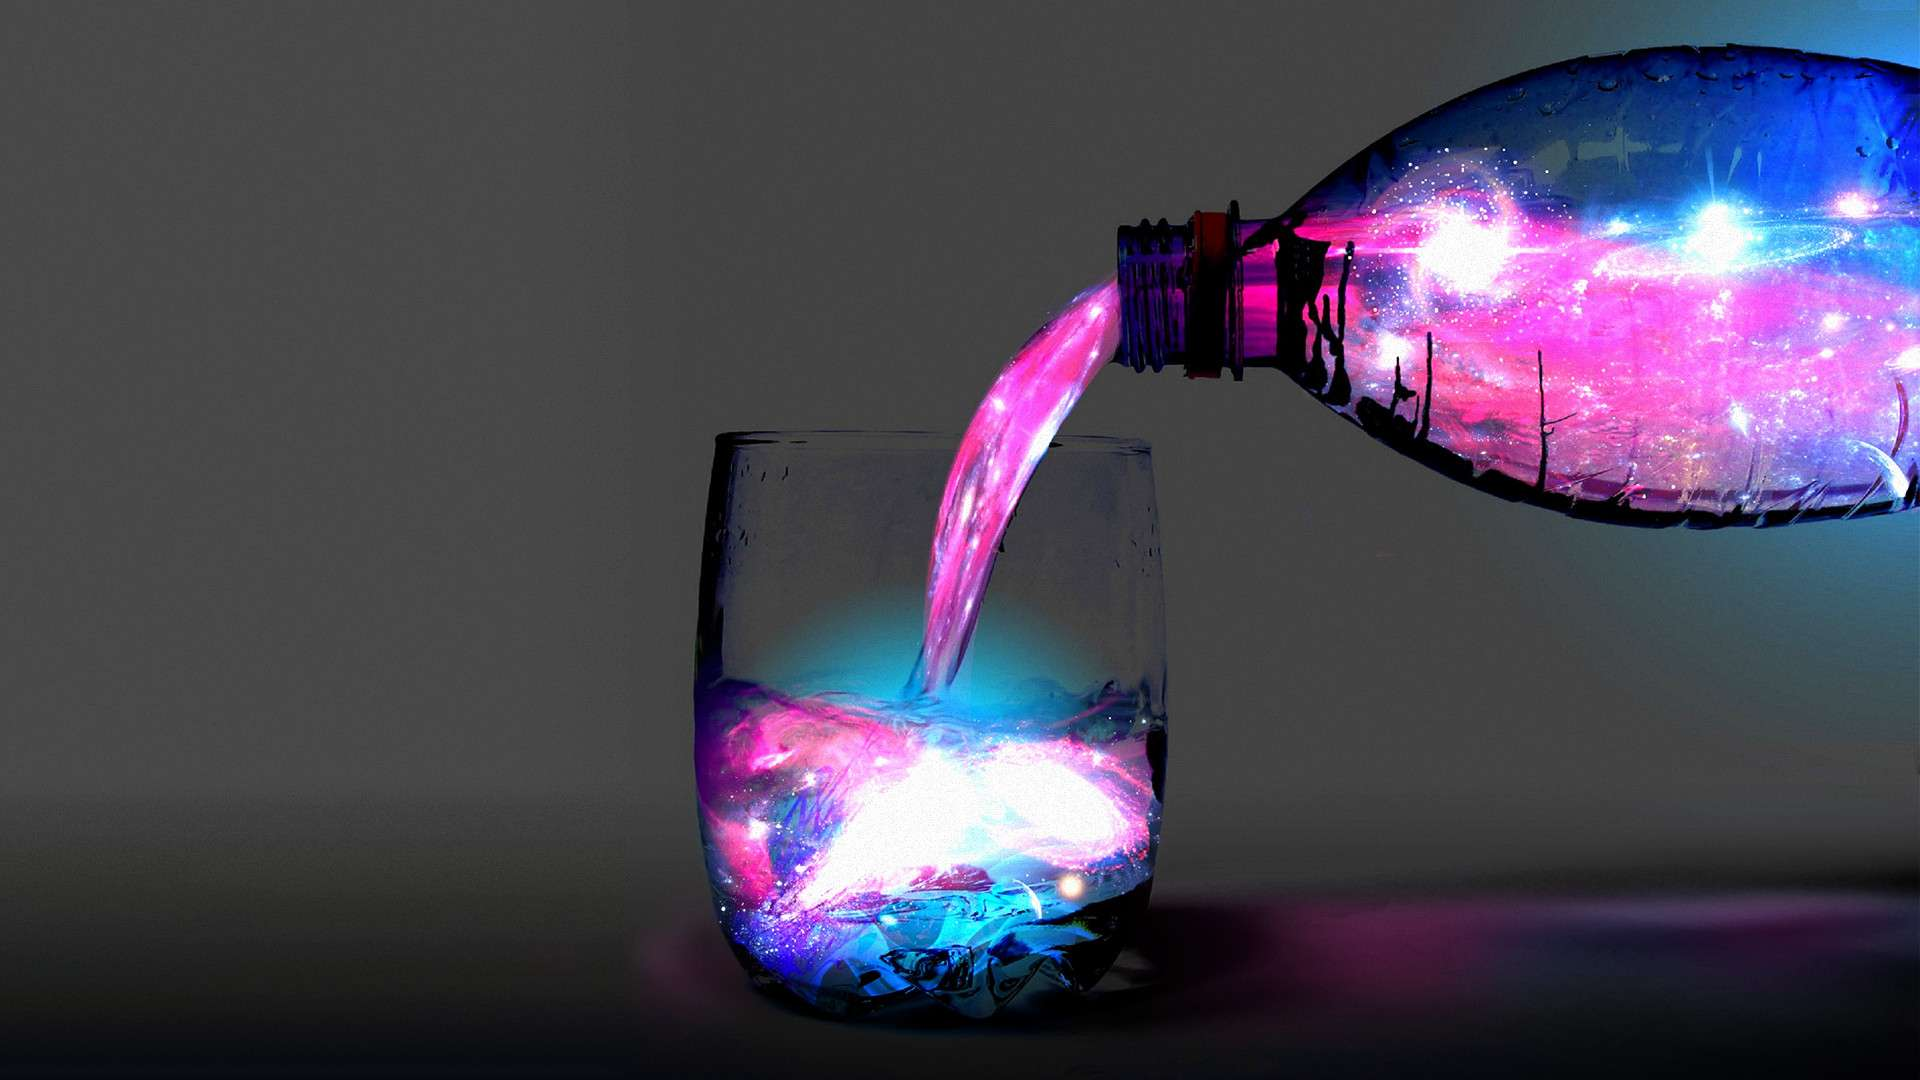 Magic Colorful Liquid  18.79 Kb